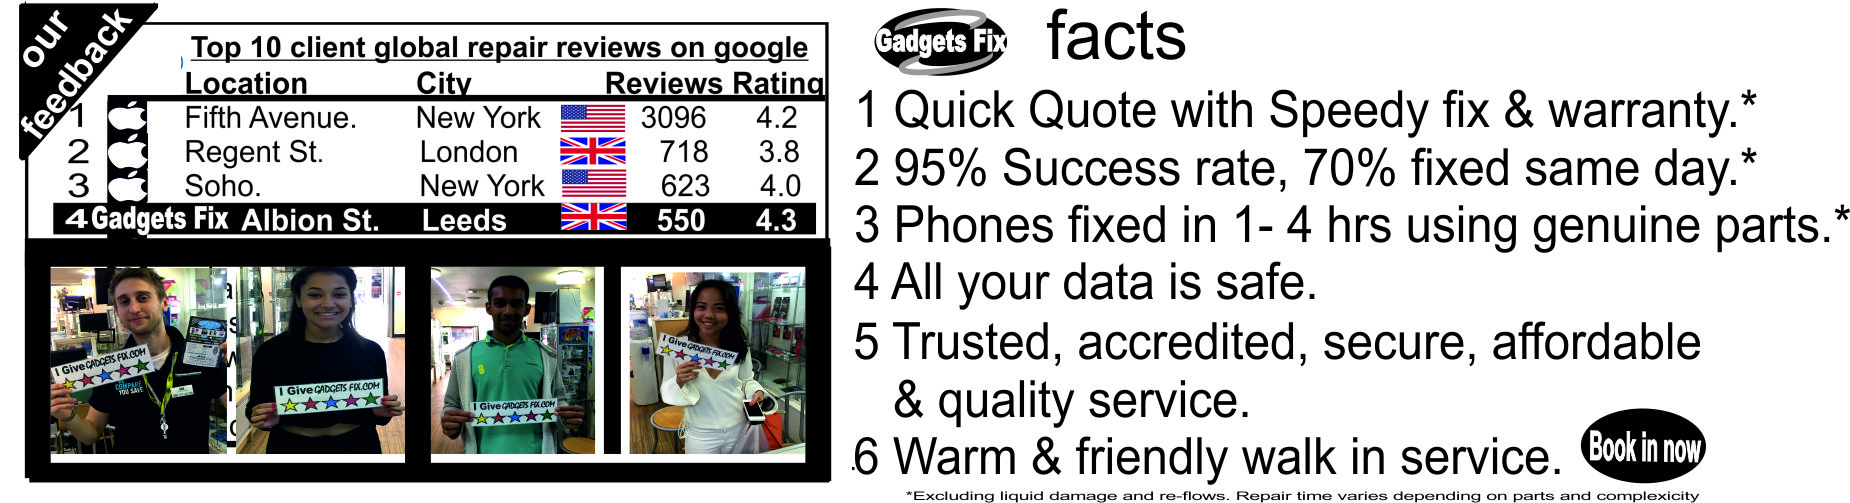 gadgets fix feedback repairs leeds facebook & google reviews latest